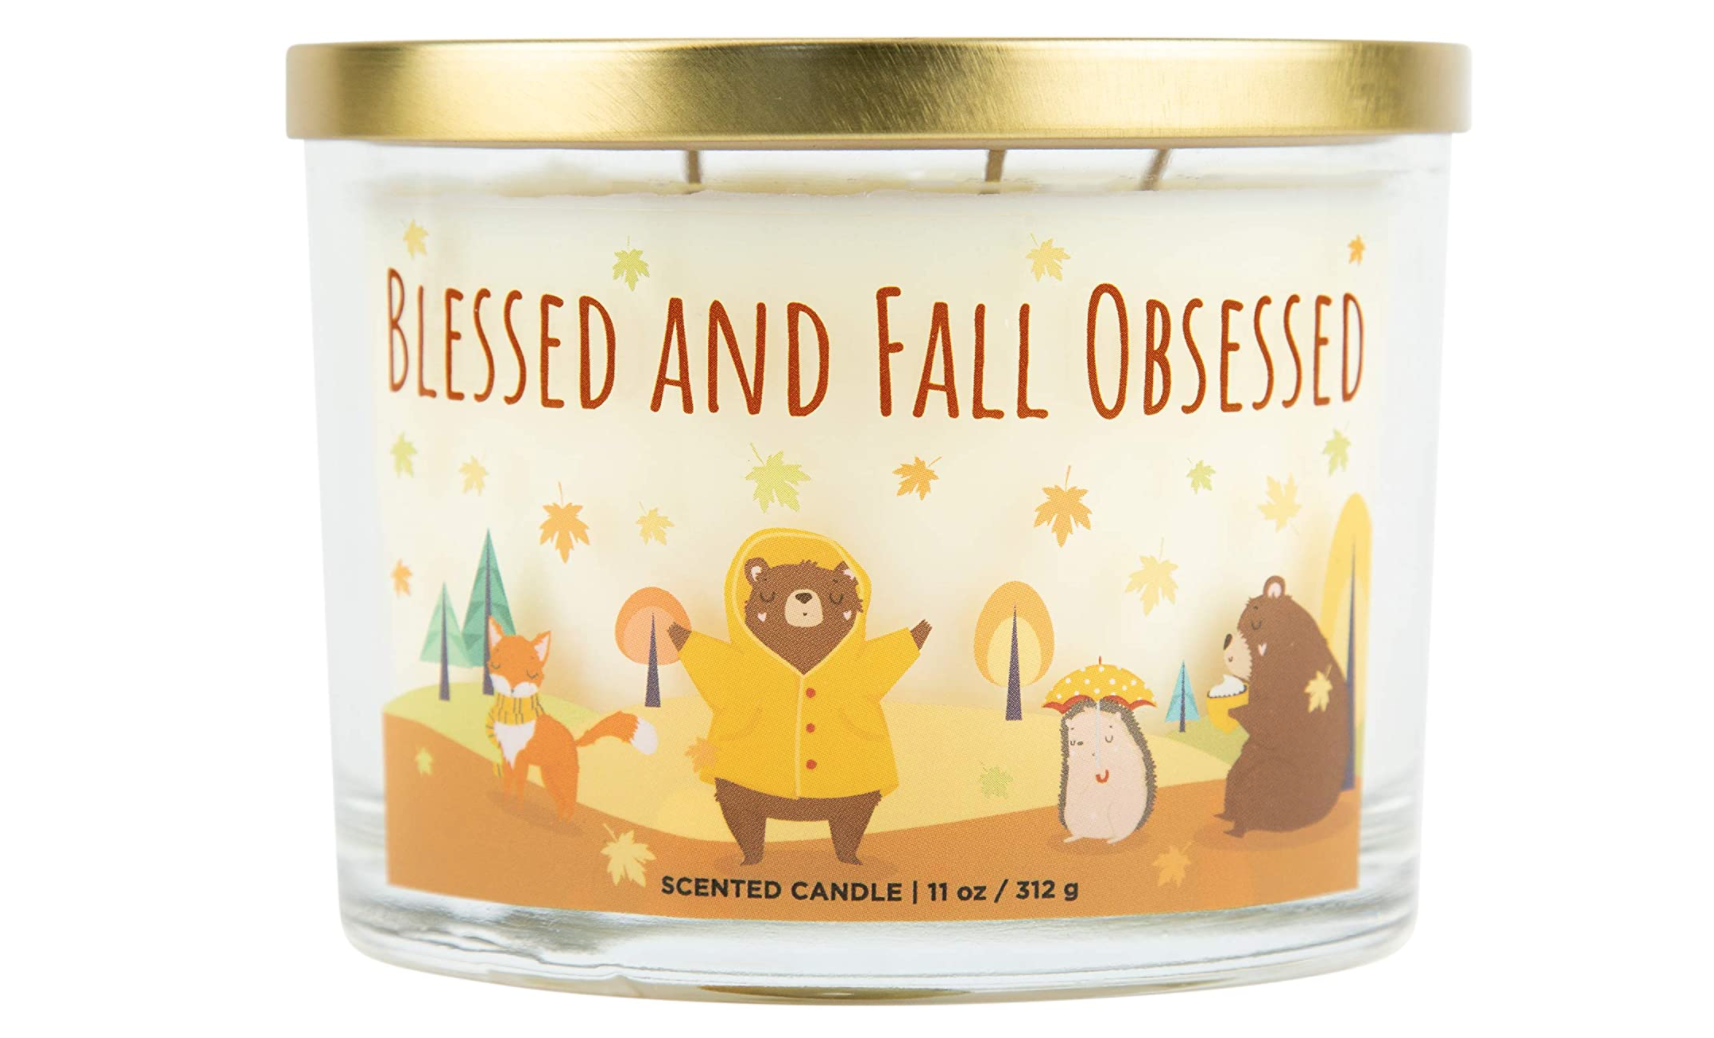 15 Best Fall Candles 2020 Top Smelling Autumn Candle Scents